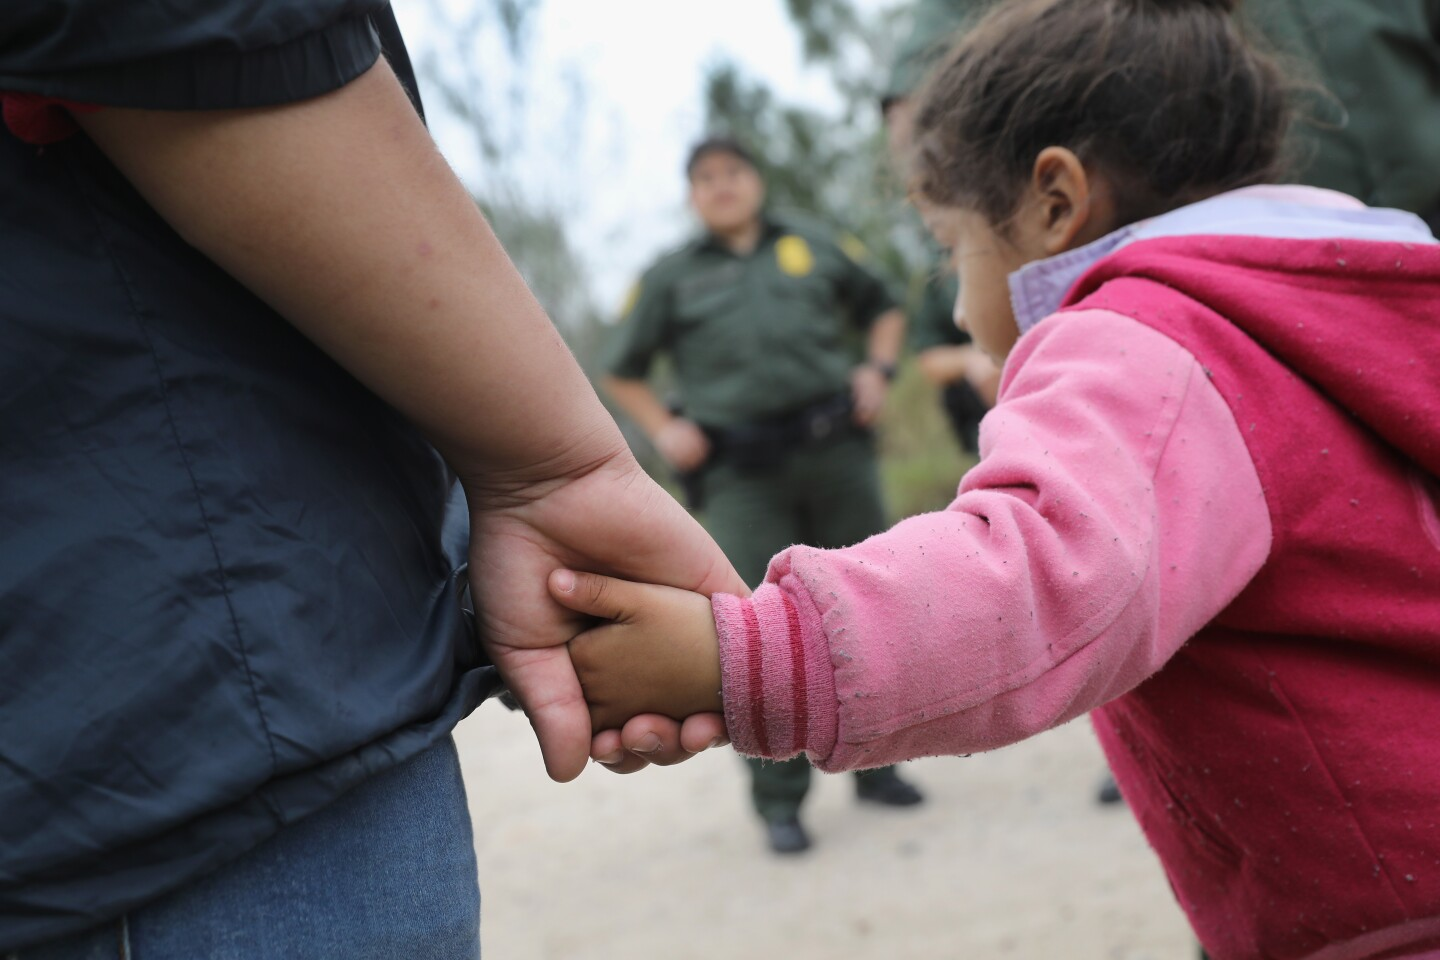 A close-up shot of a little girl holding an adult's hand.